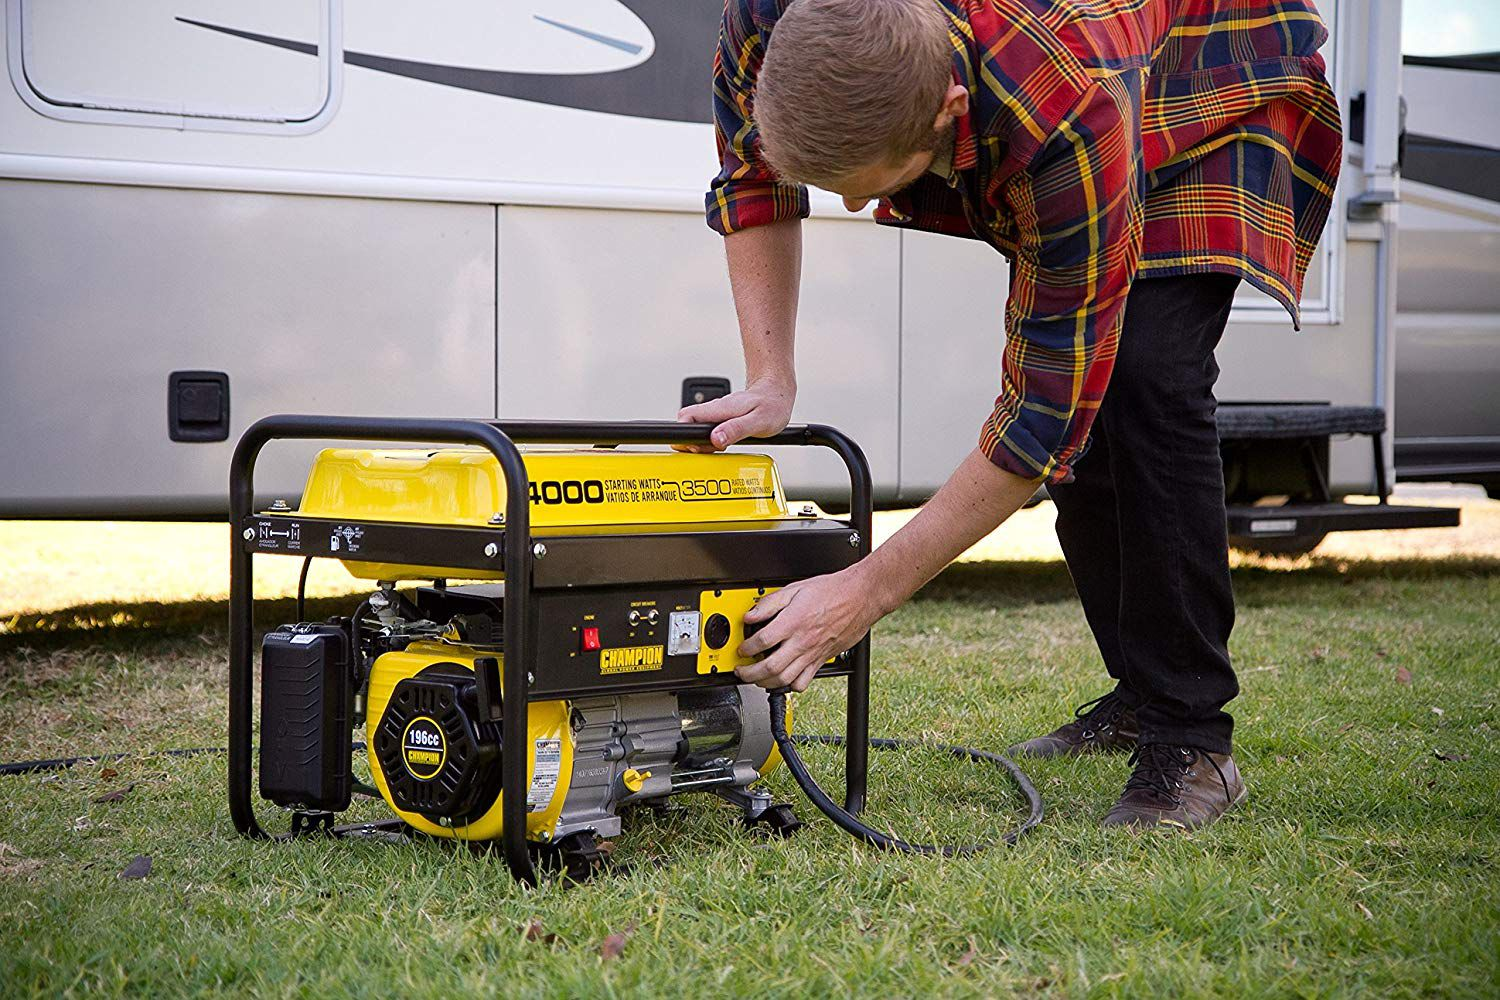 The 7 Best Generators for Camping of 2019